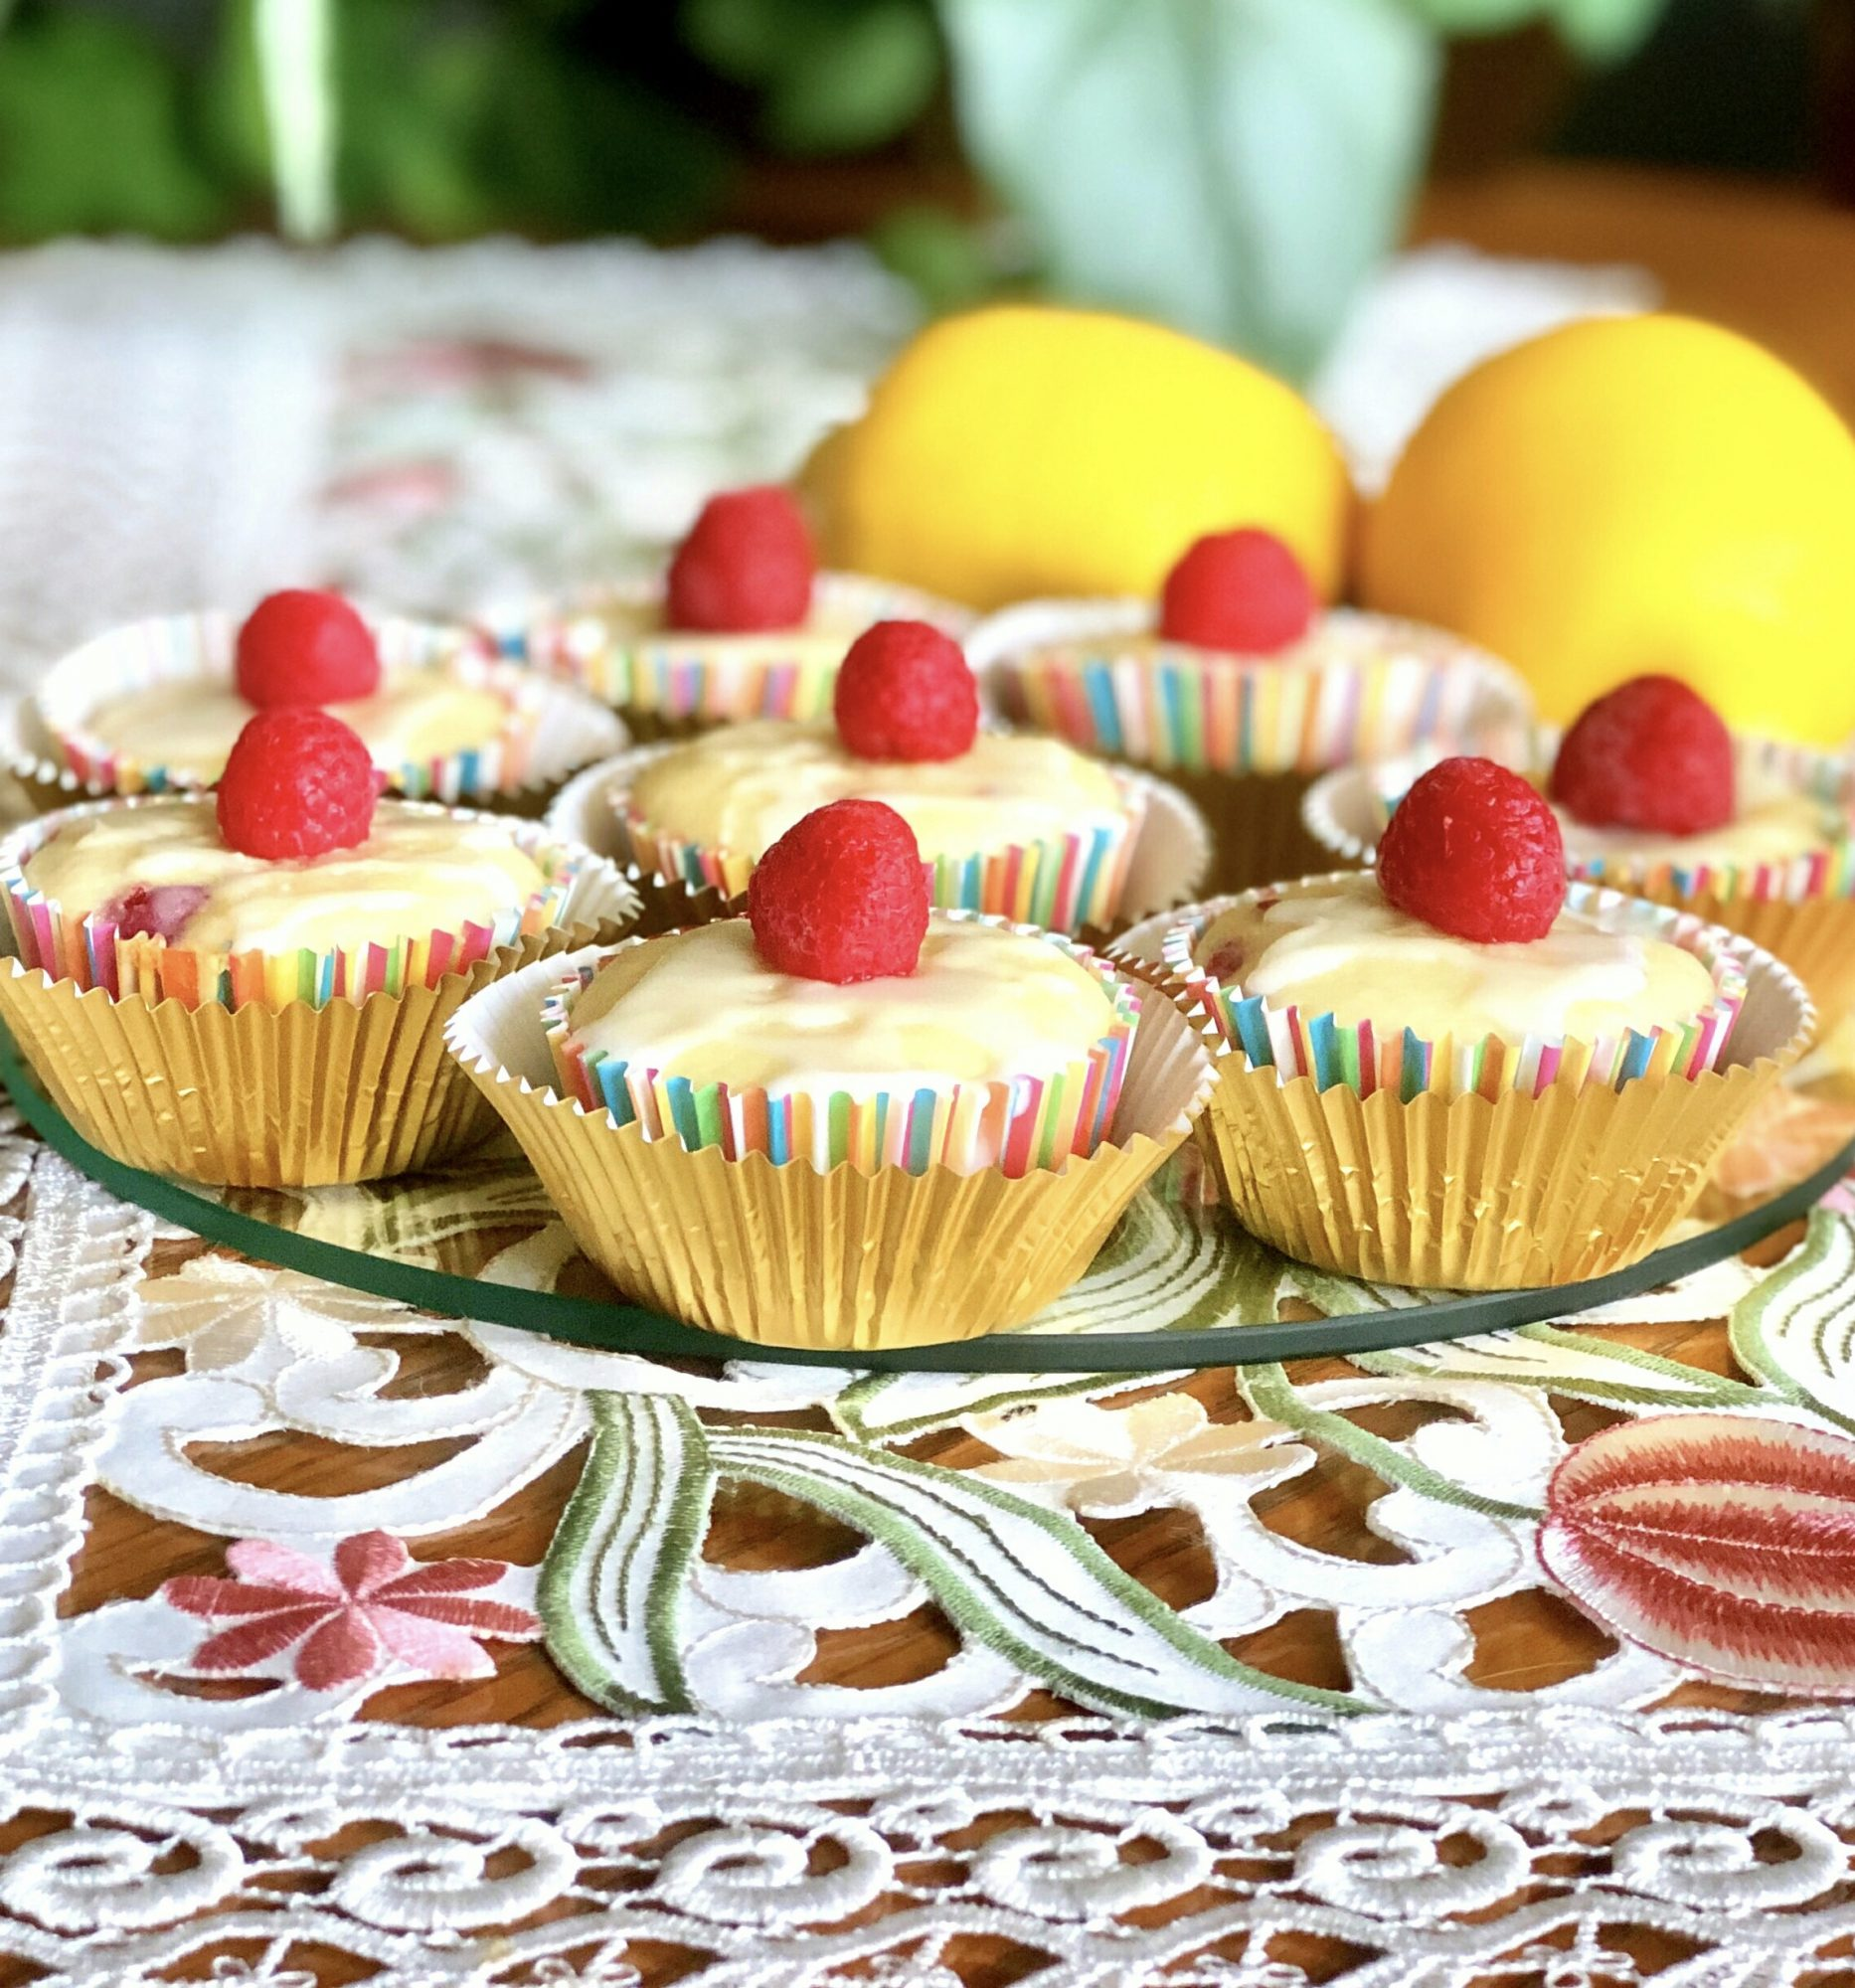 Raspberry-Lemon Cupcakes